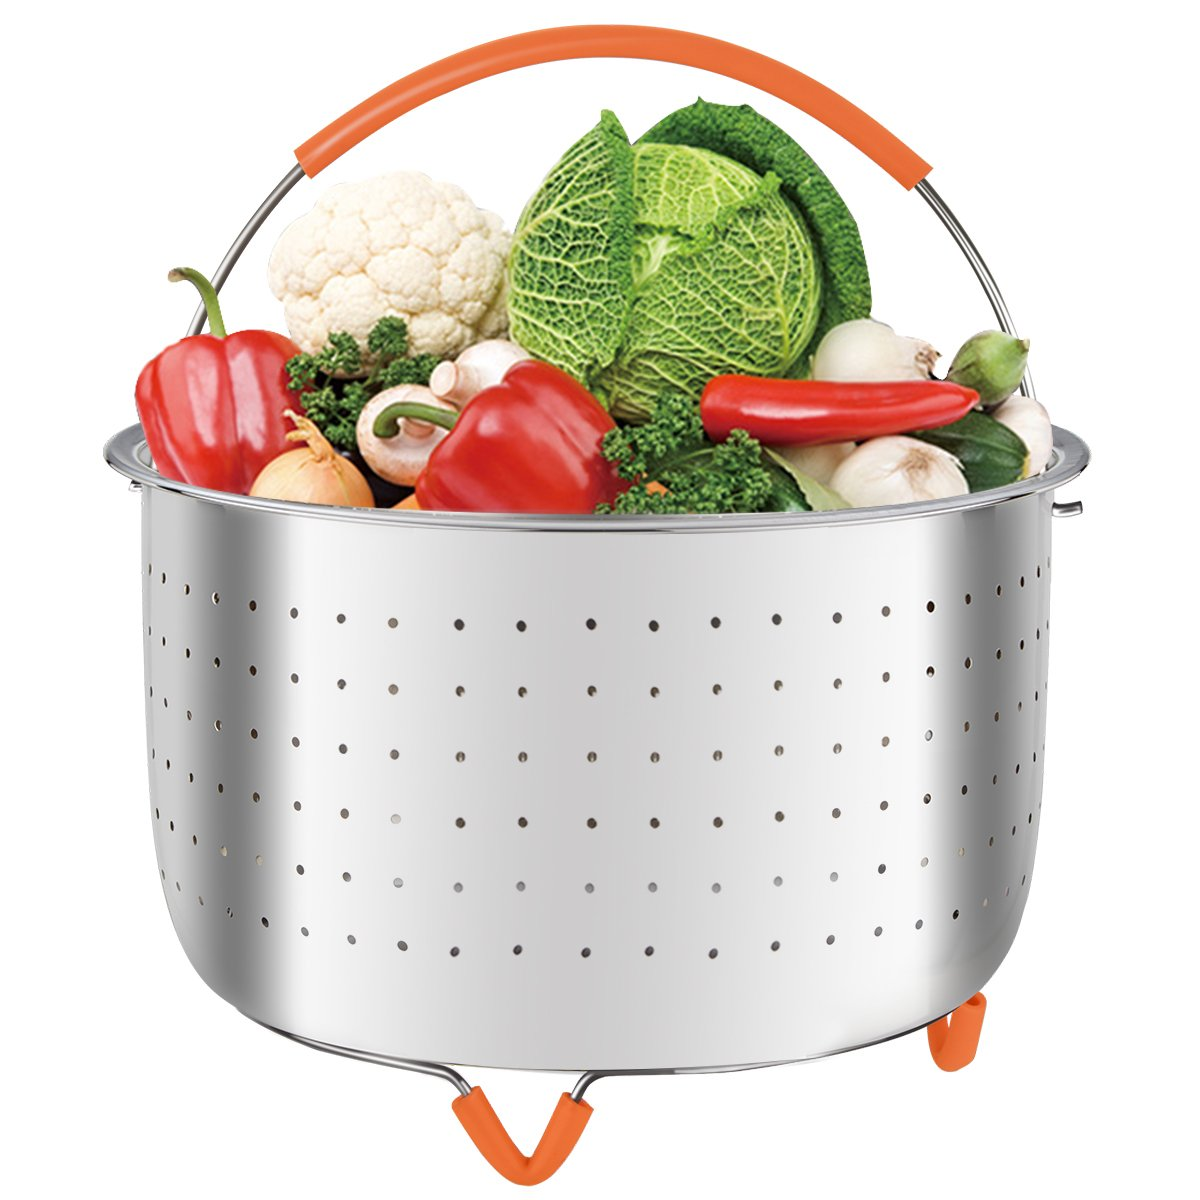 MASHANG Steamer Basket Stainless Steel Vegetable Steamer Instant Pot Accessories Fit for Instapot 6qt 8qt Electric Pressure Cooker Steamer Insert Food Steamer Egg Steamer with Silicone Covered Handle